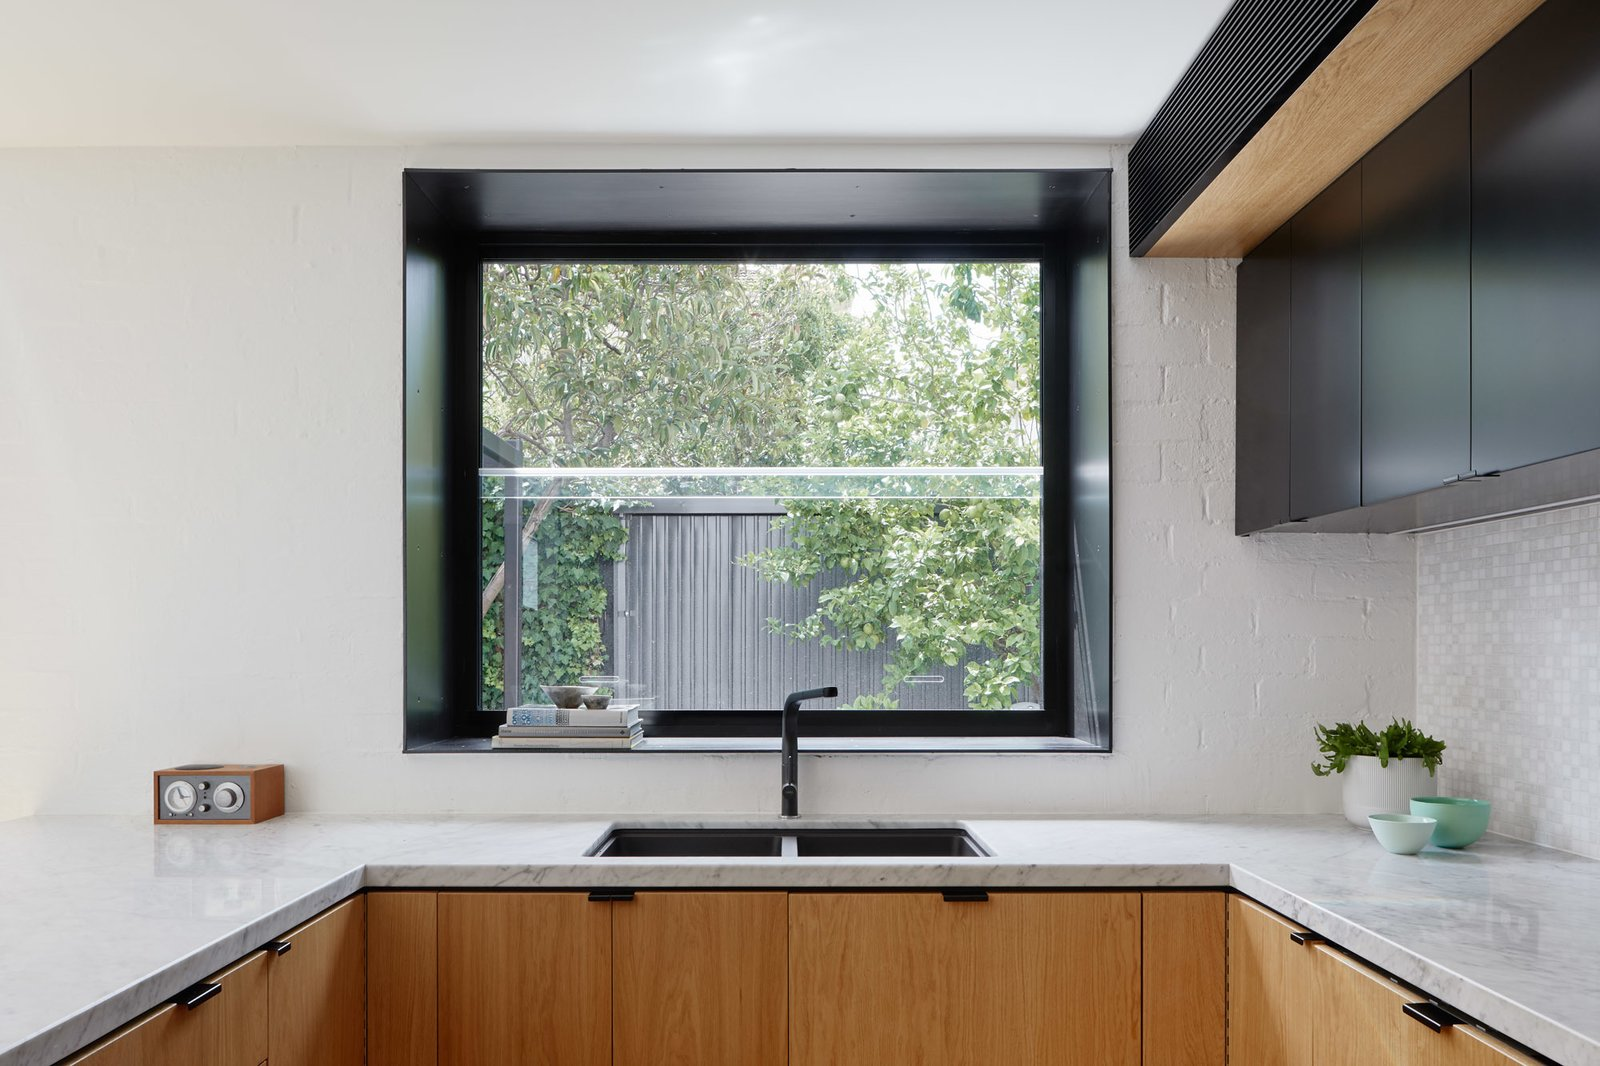 Kitchen, Glass Tile Backsplashe, Undermount Sink, Range Hood, Wood Cabinet, Marble Counter, Mosaic Tile Backsplashe, Dishwasher, and Light Hardwood Floor Kitchen box-bay window  Photo 9 of 21 in Thanks to a Double-Height Dining Room, a Melbourne Home Basks in Sunshine and Courtyard Views from South Yarra Void House